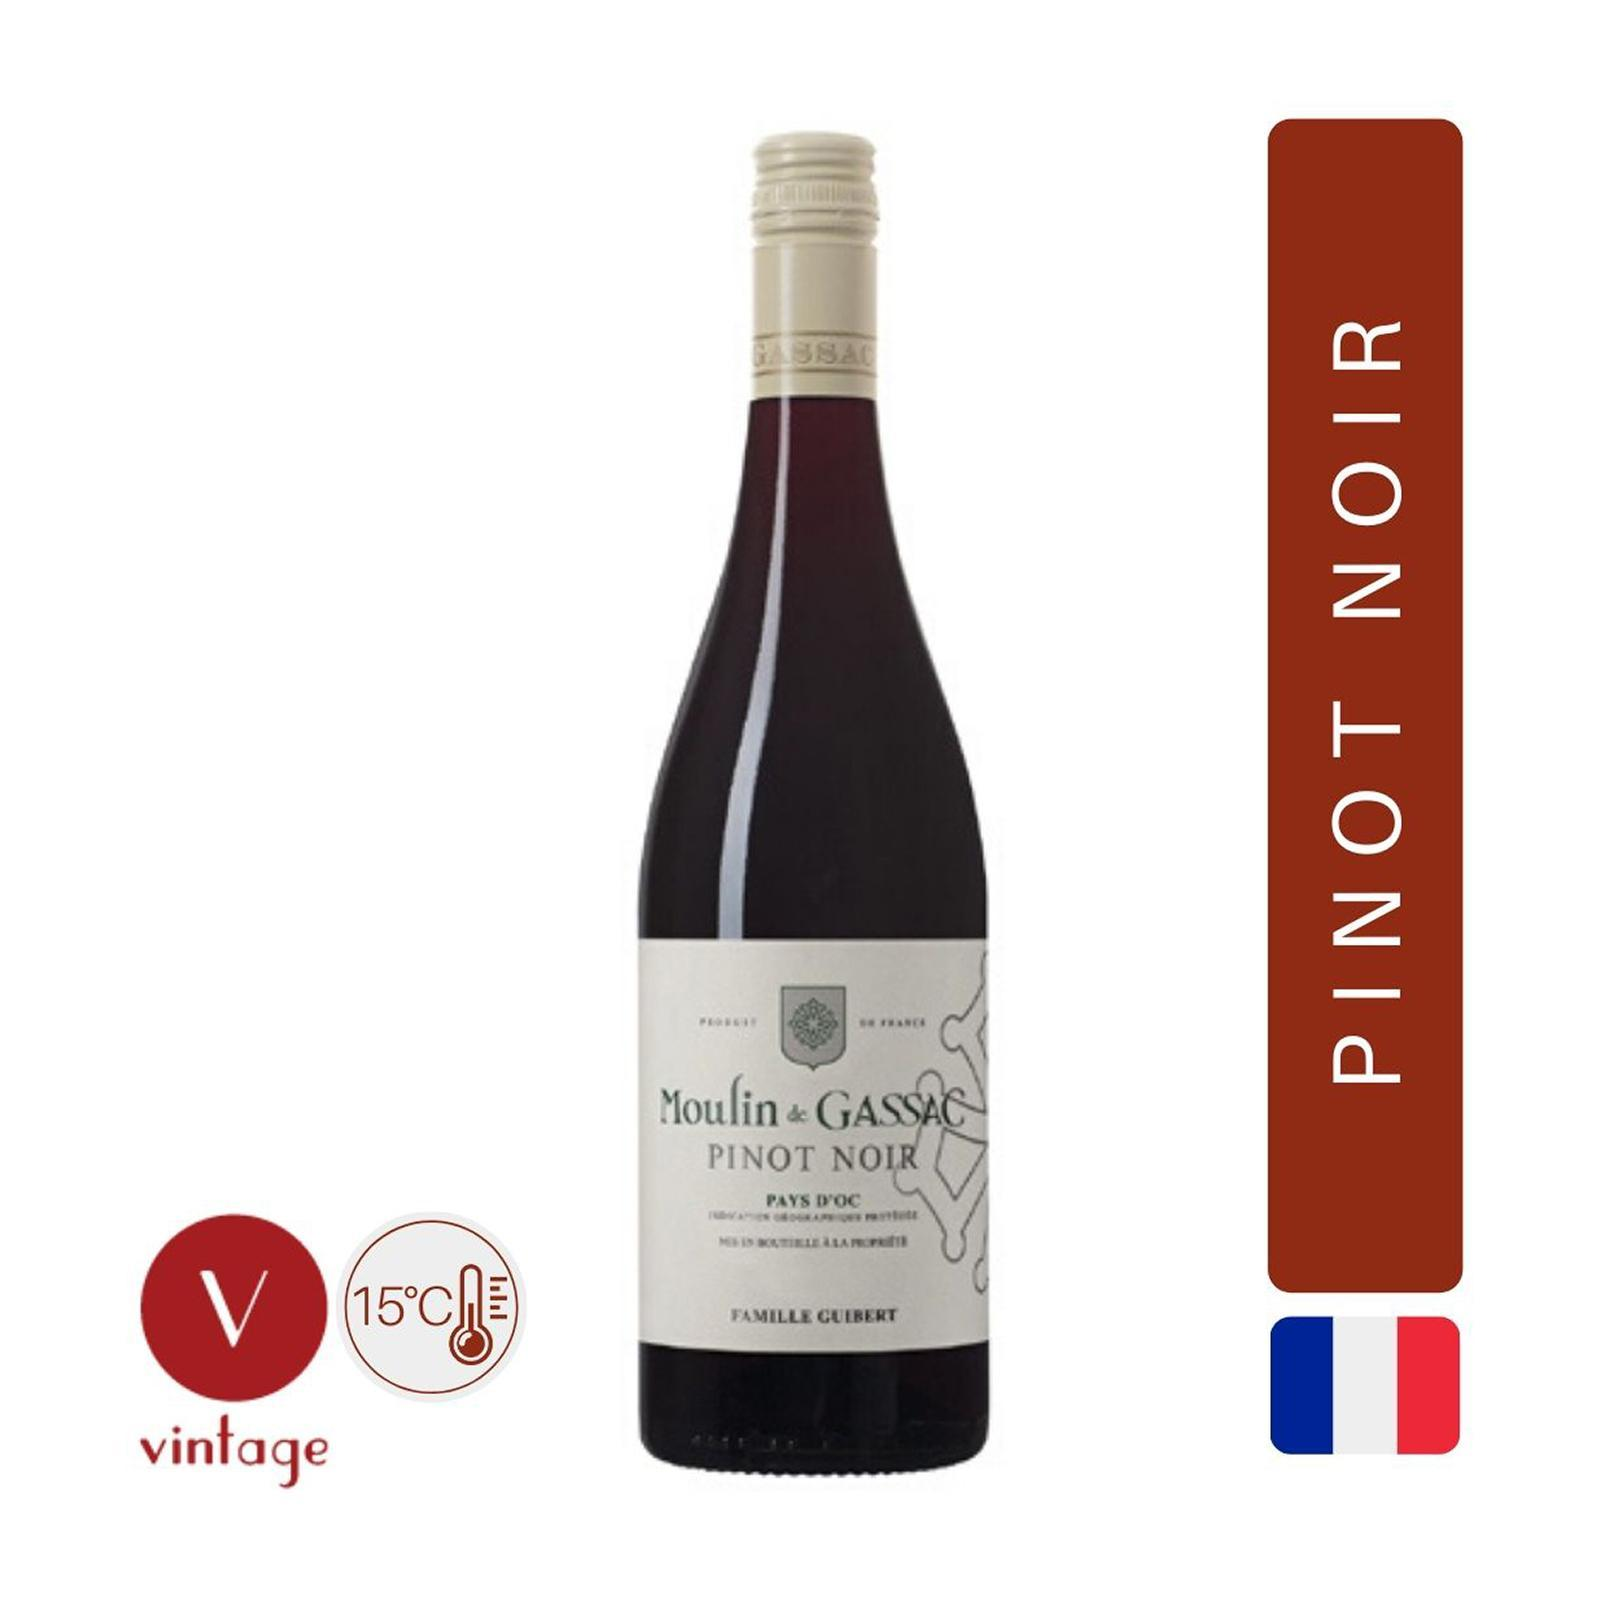 Moulin De Gassac - Pinot Noir - Red Wine - By The Vintage Wine Club